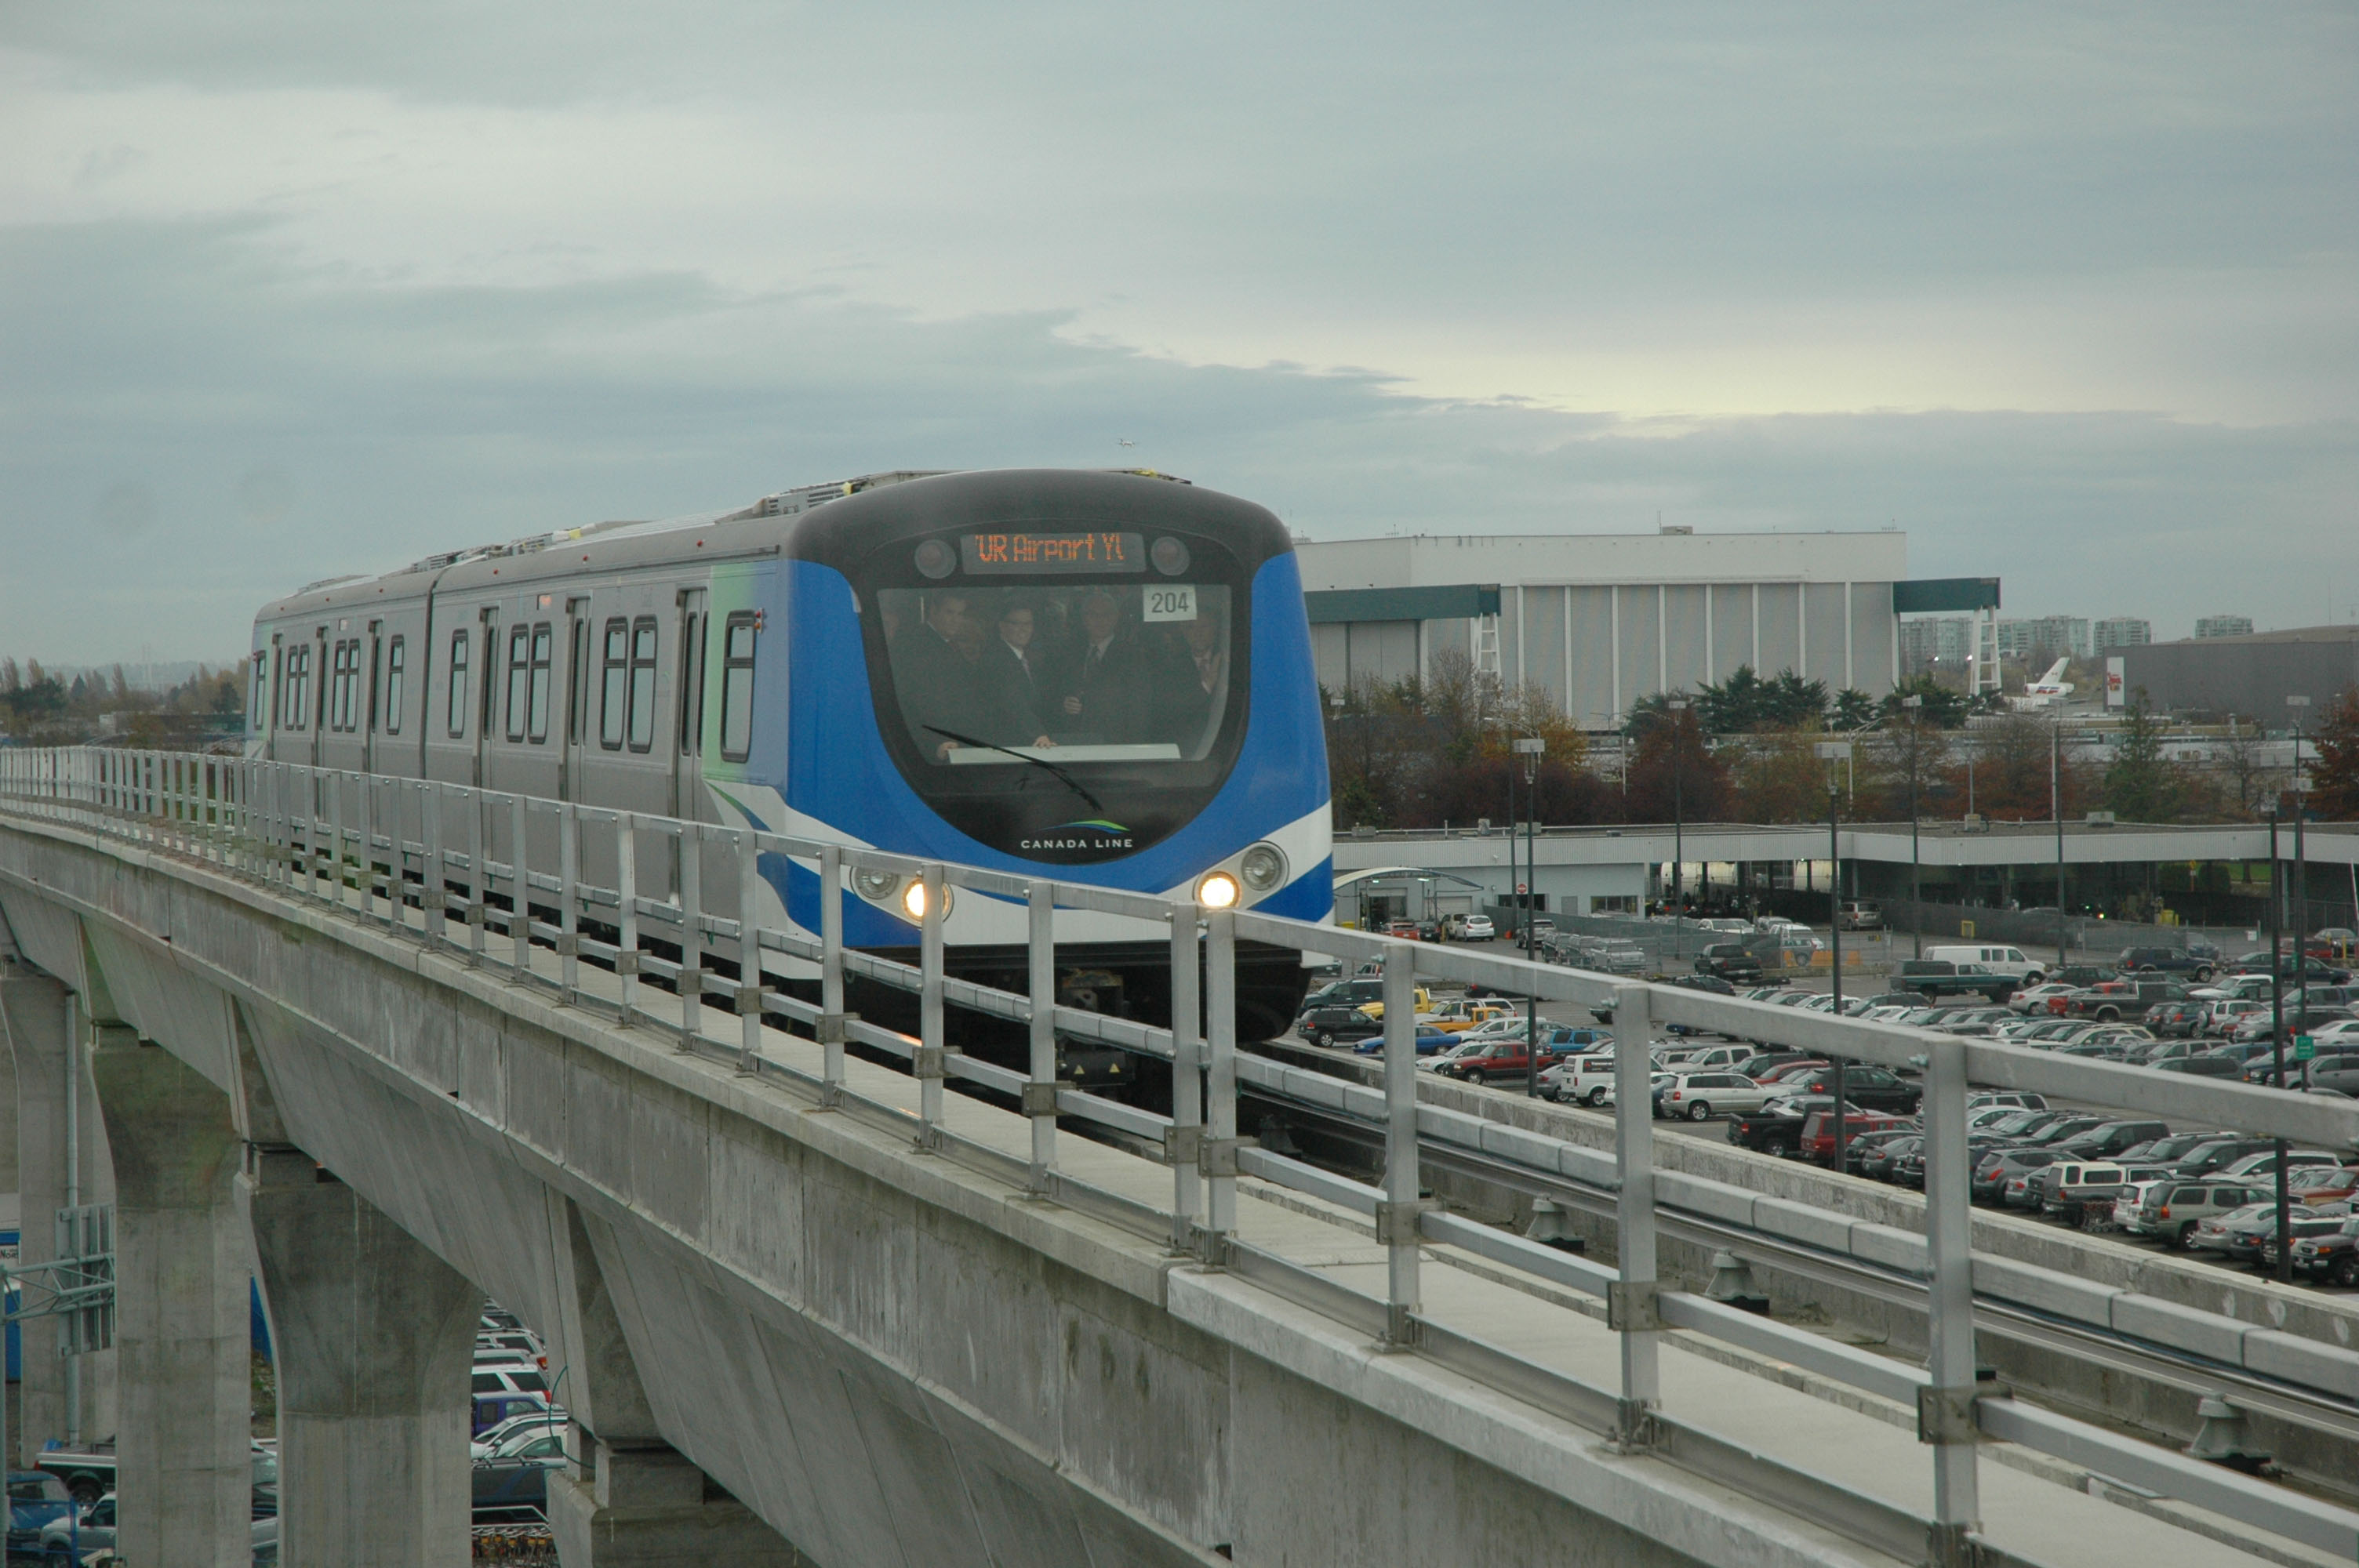 The Canada Line train, still approaching YVR!